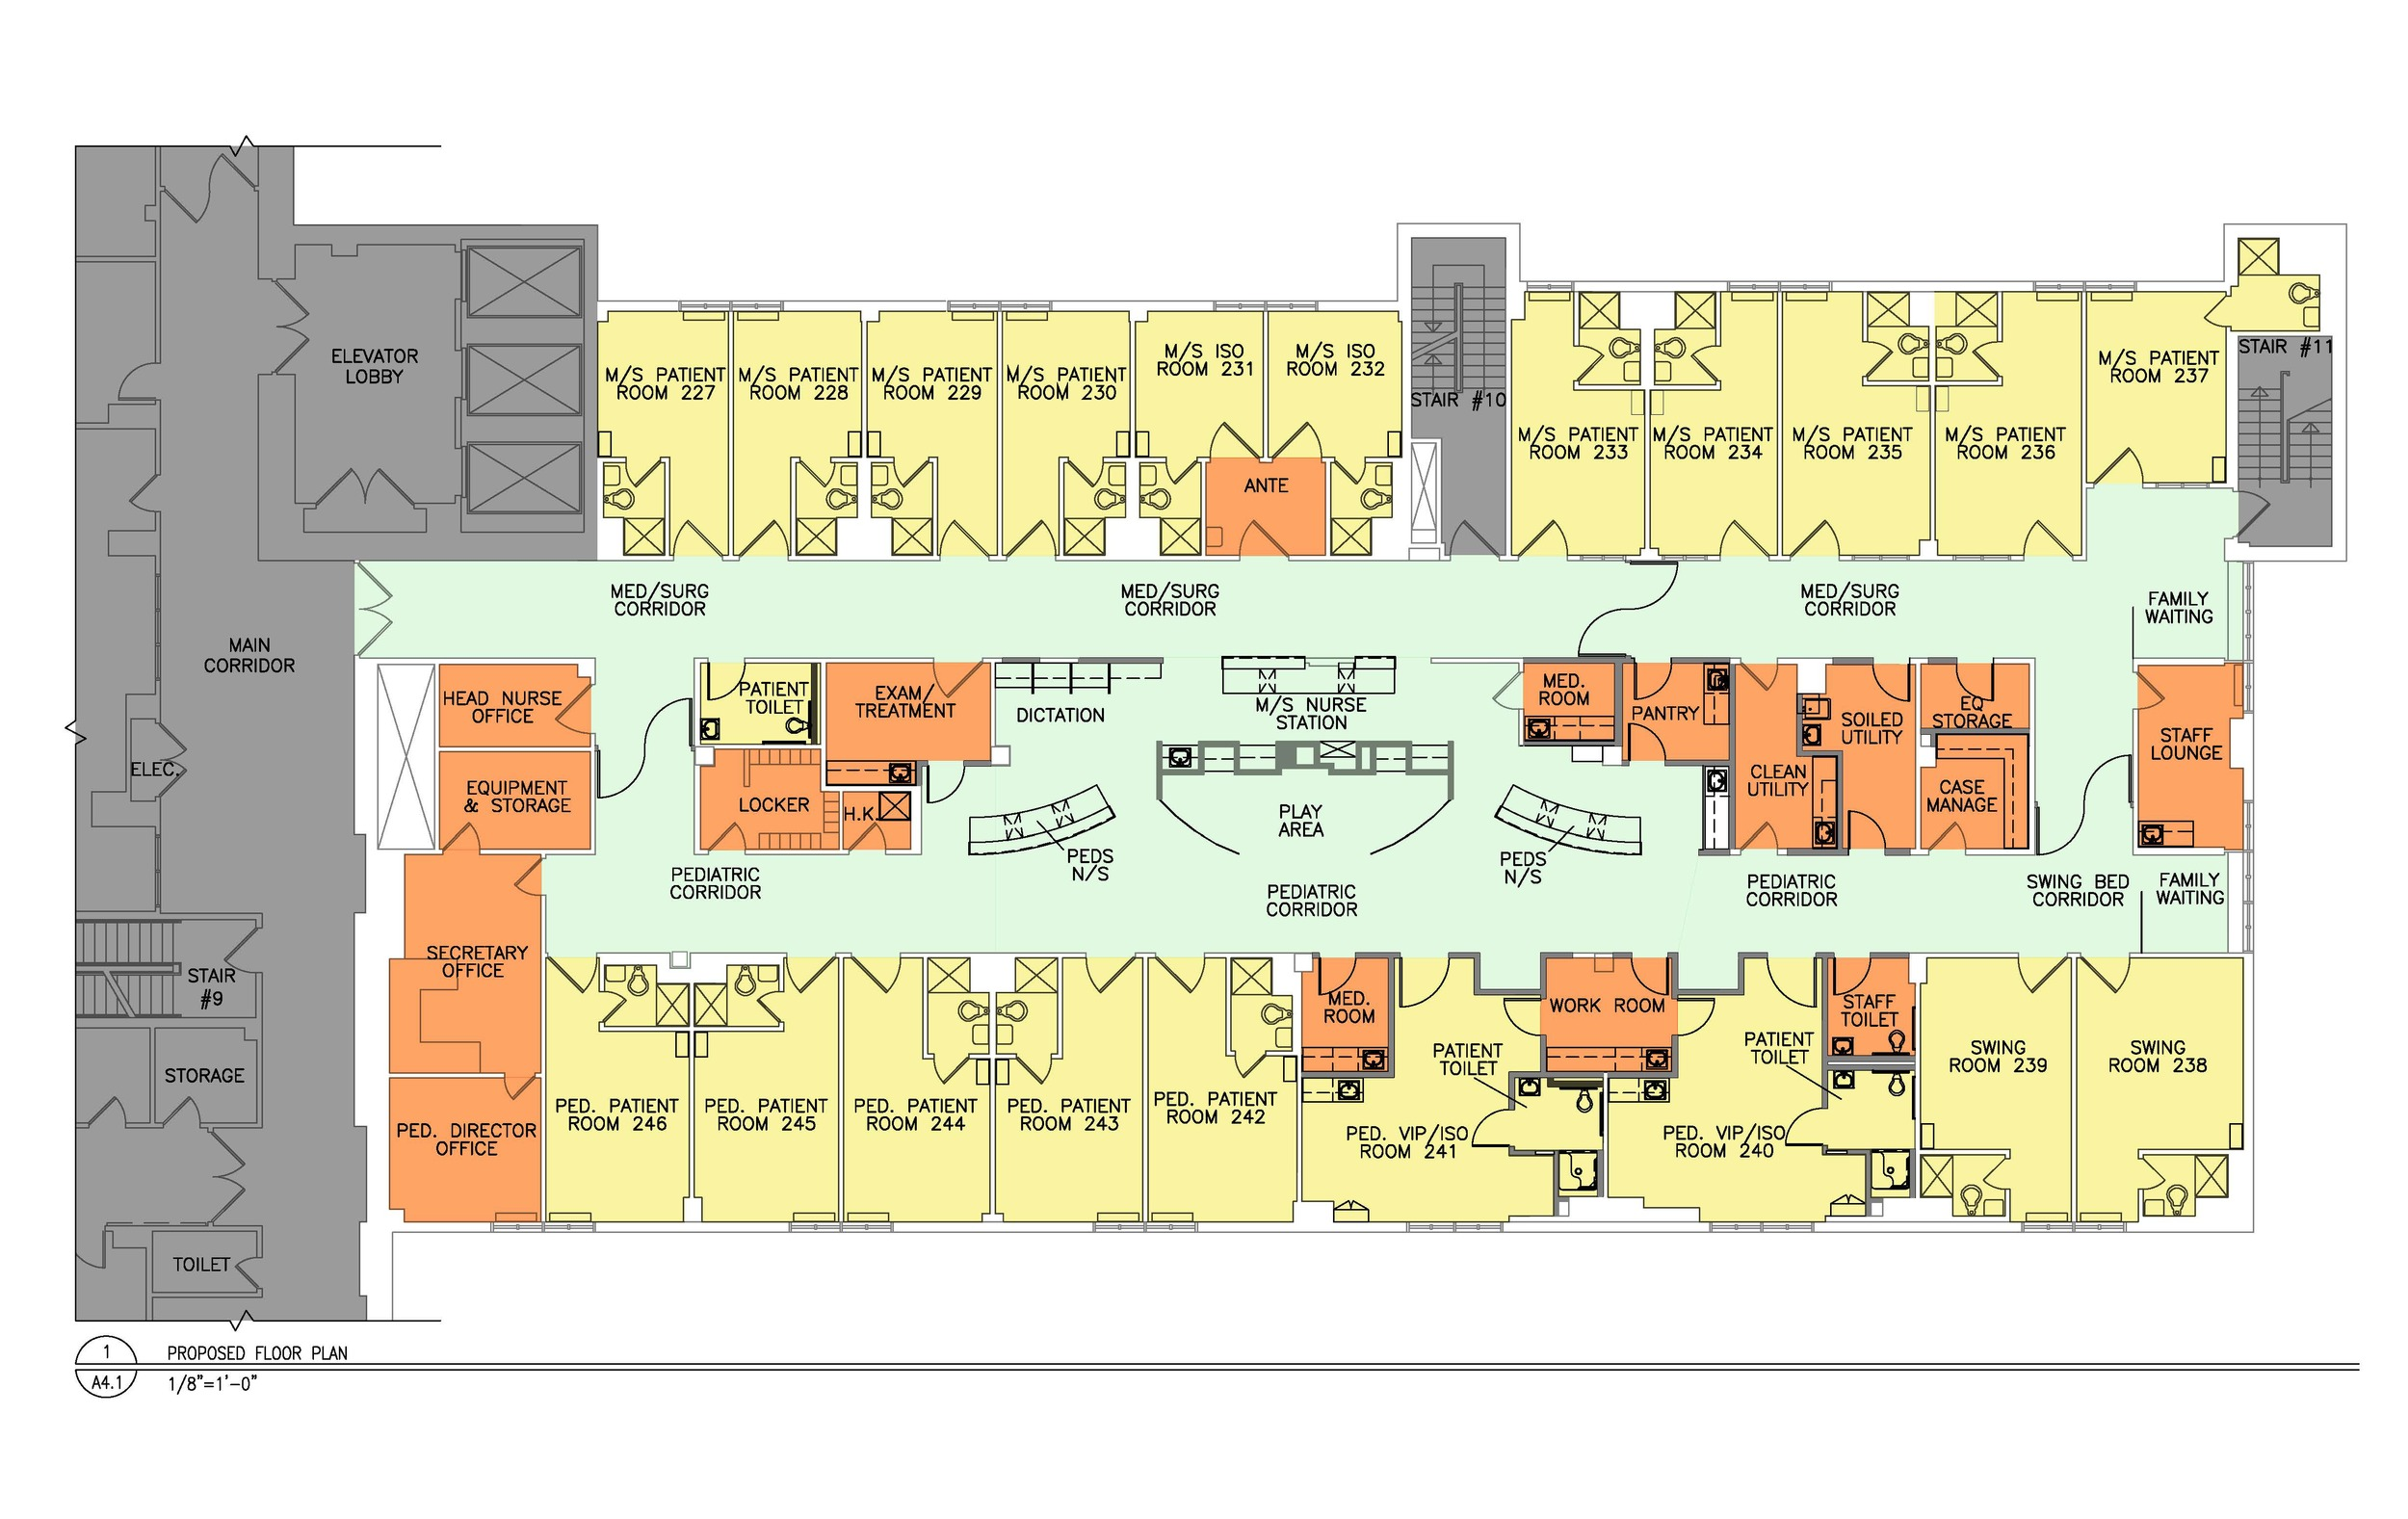 Pediatric Floor Plan.jpg